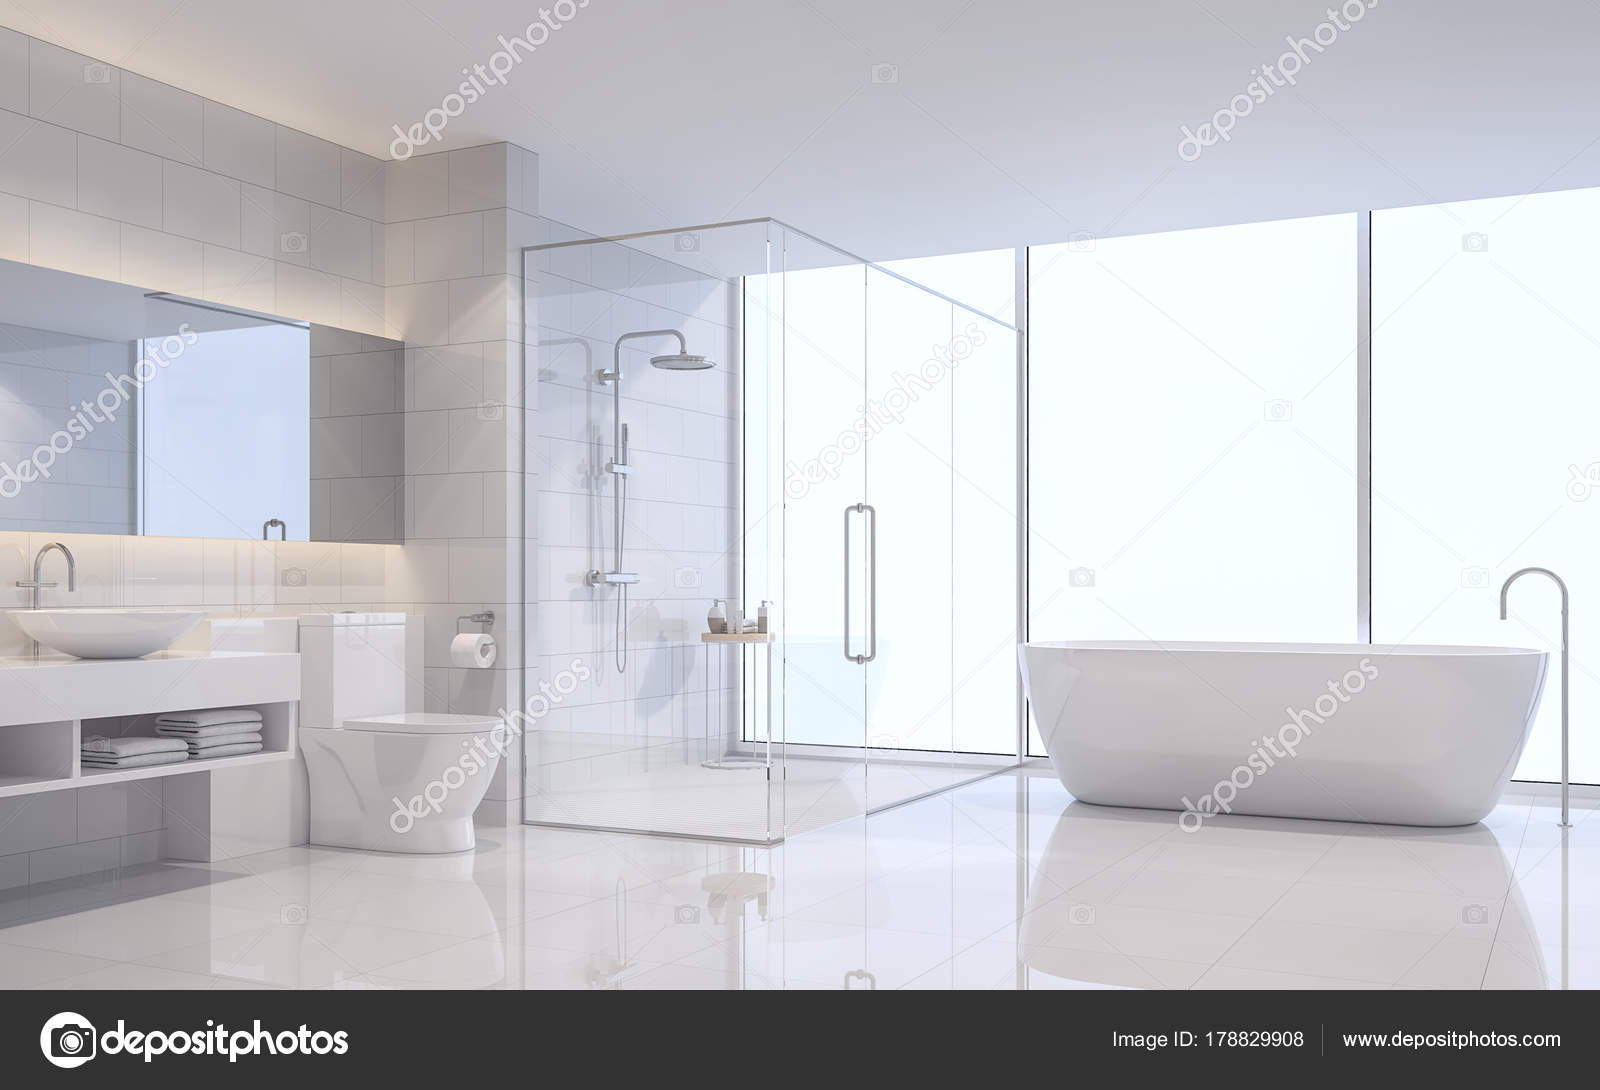 Modern White Bathroom Rendering Image White Tile Wall Floor Room ...